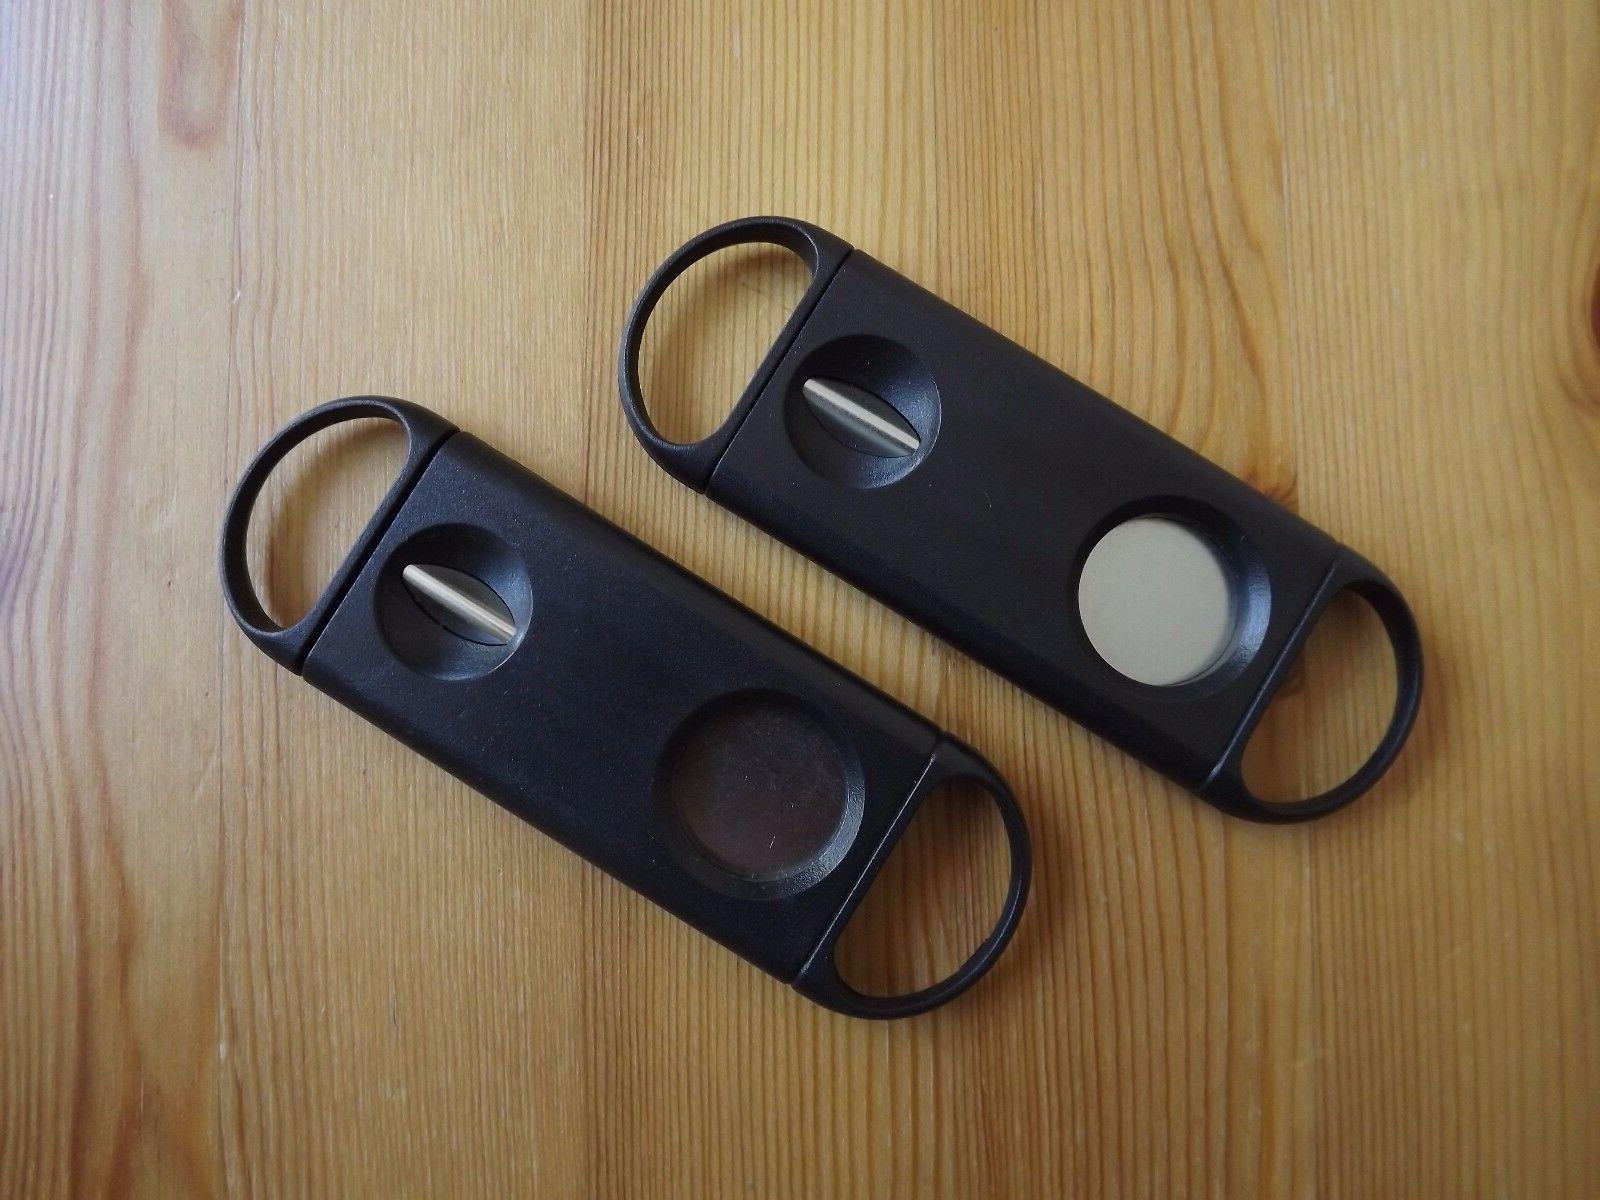 2 Pack 2 in 1 Guillotine & V Cut Cigar Cutter Premium Qualit